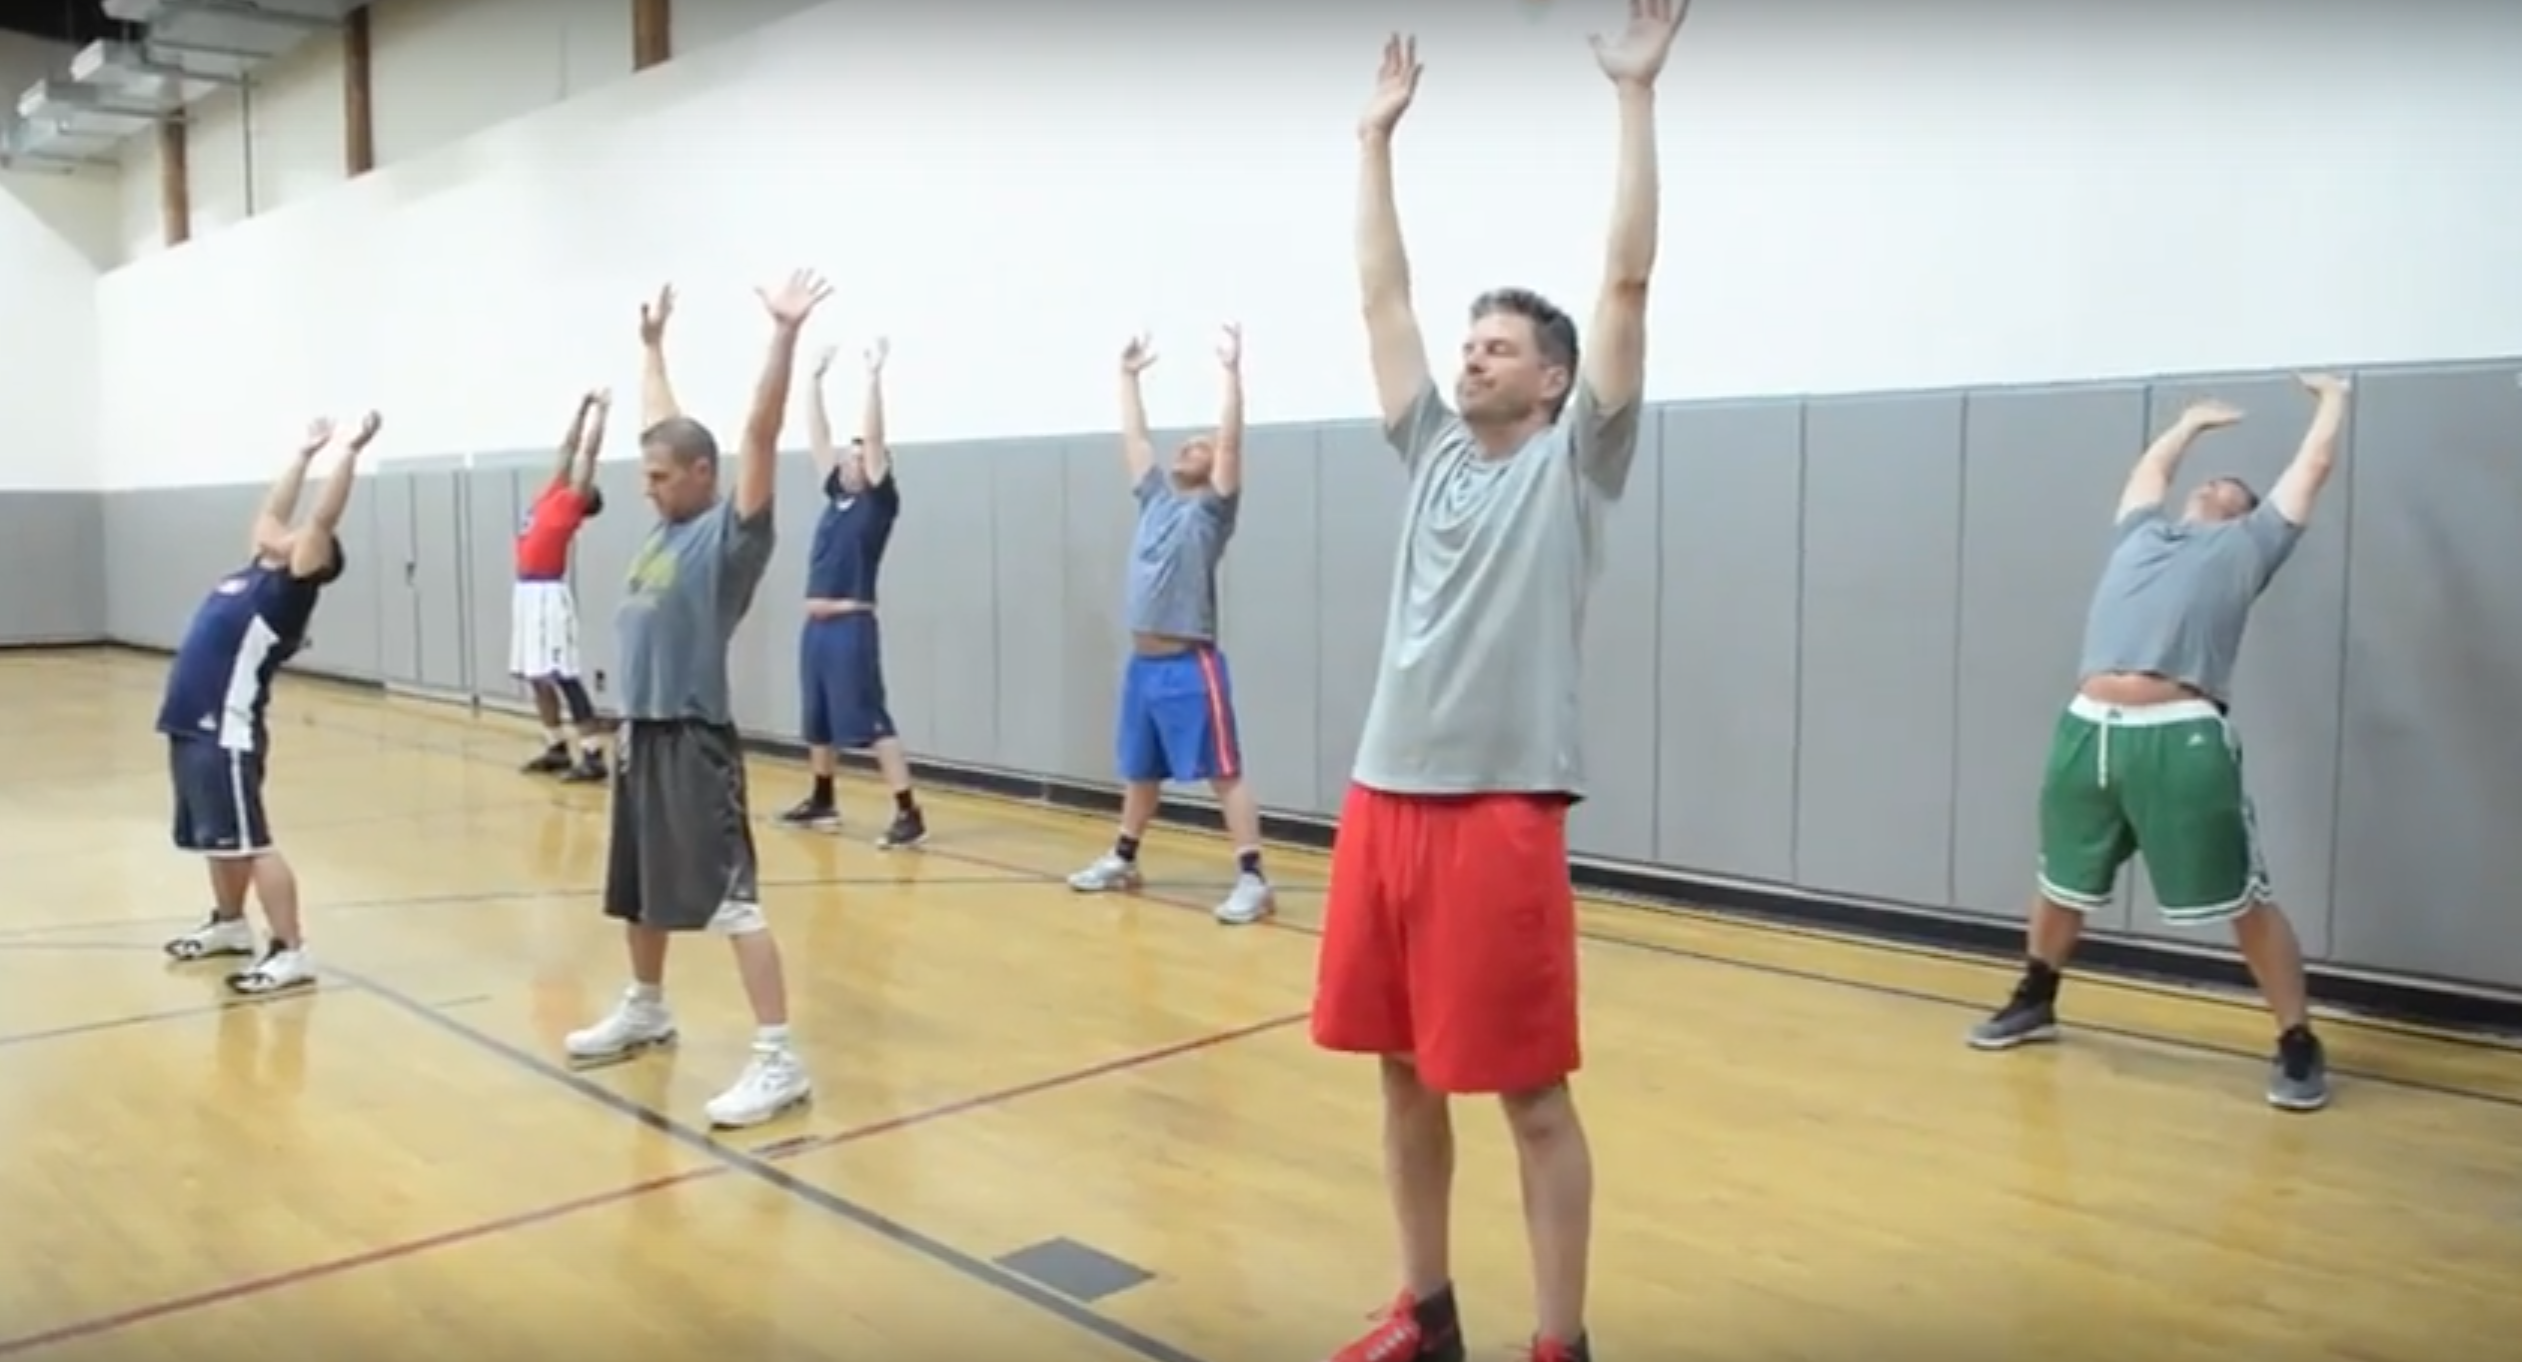 Dynamic Basketball Warmup with HoopsLink